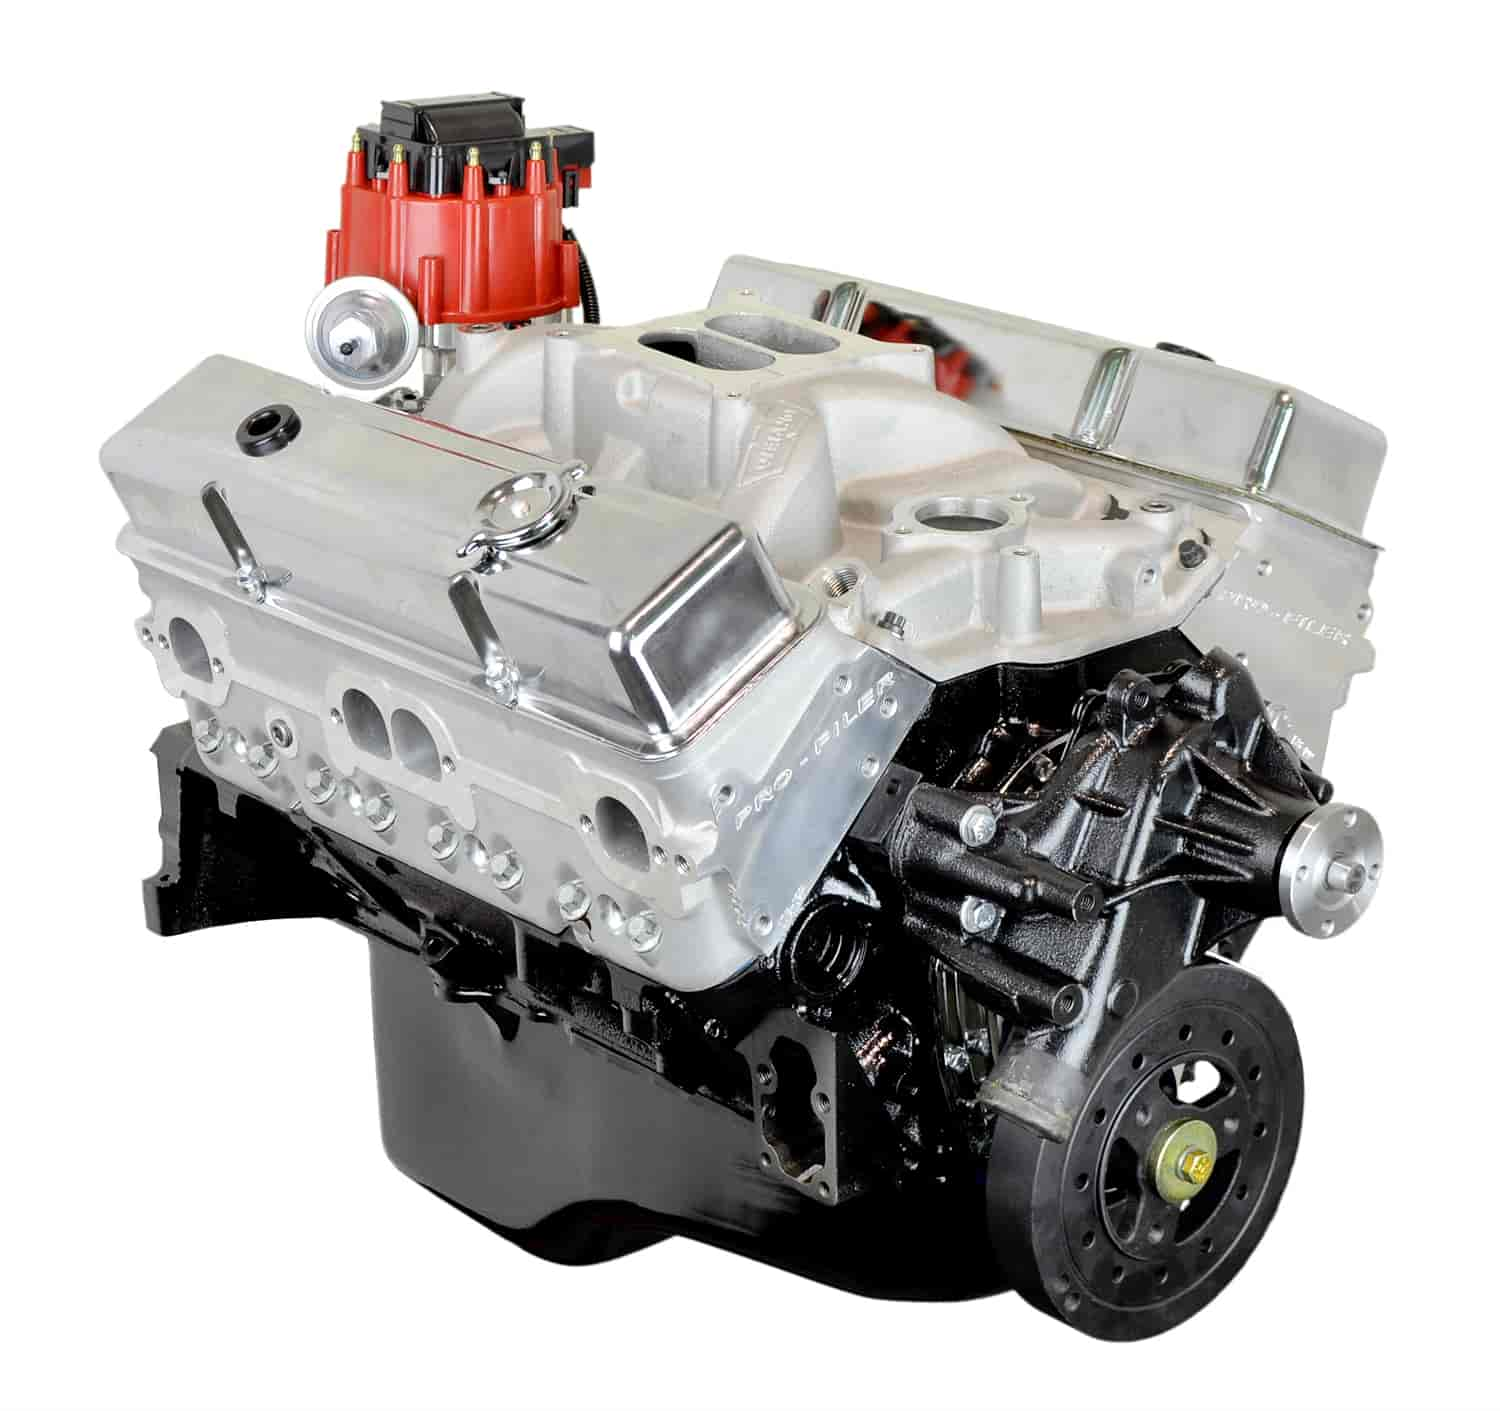 Atk engines hp89m high performance crate engine small block chevy atk engines hp89m malvernweather Choice Image